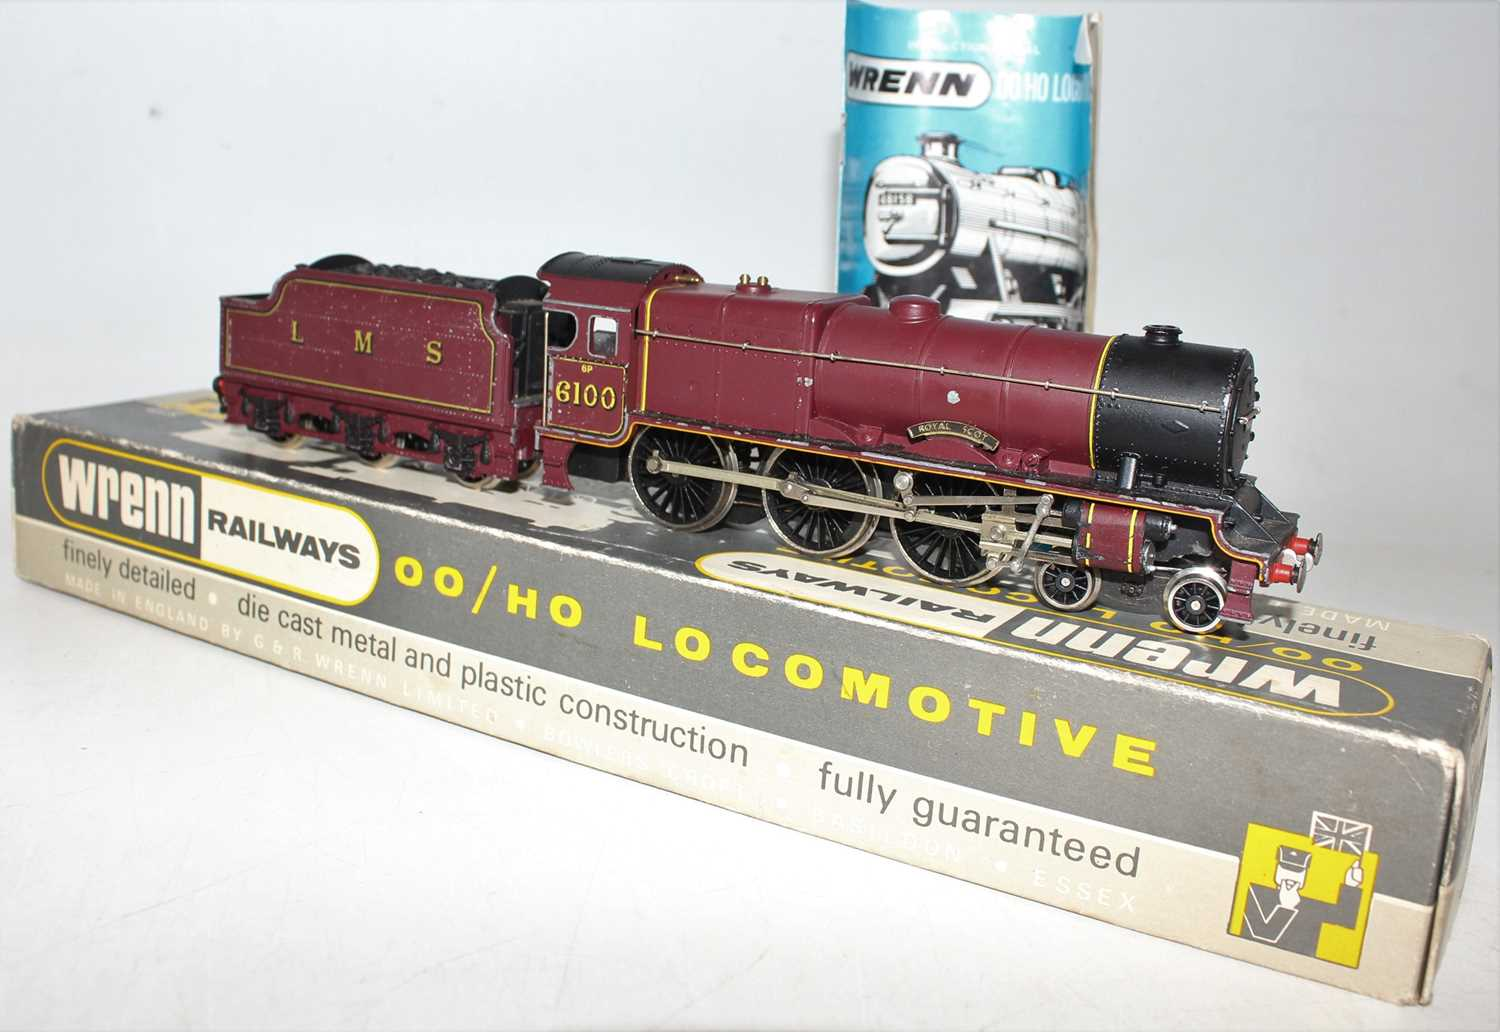 W2260 Wrenn loco & tender 'Royal Scot' 4-6-0 No.6100, LMS red, chips to cylinder covers, - Image 2 of 3